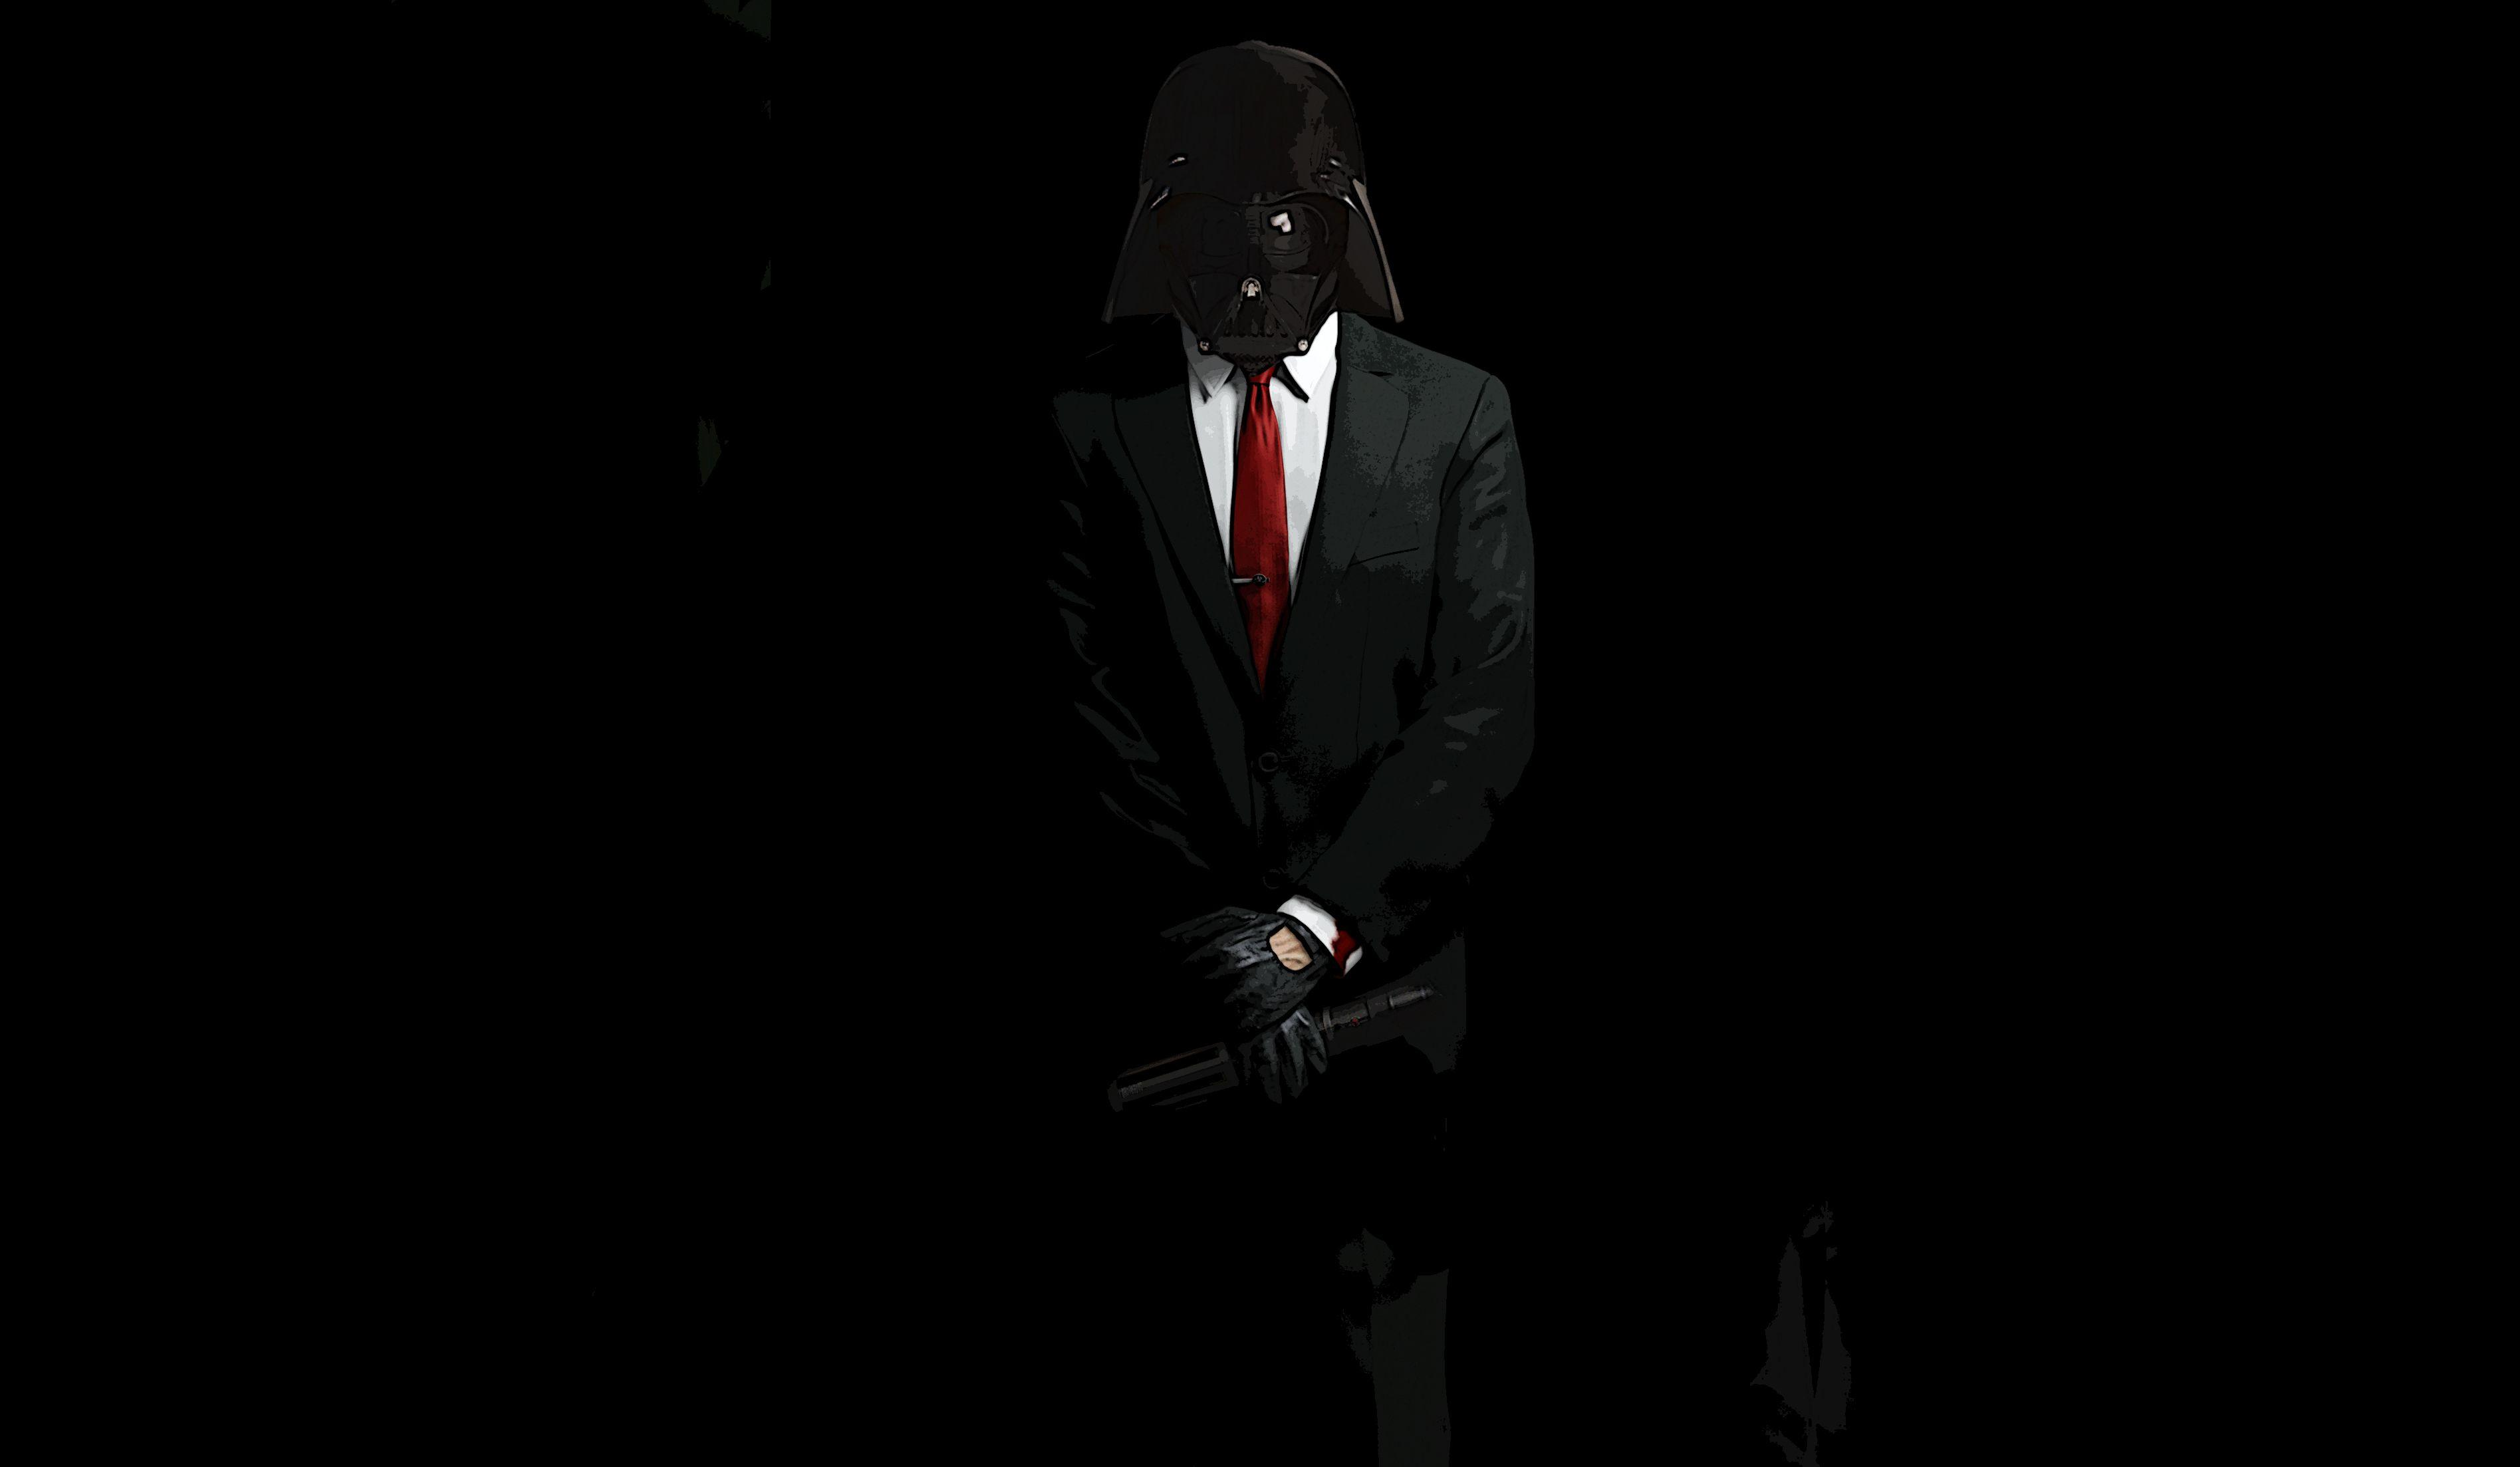 Cool Gangster Backgrounds - Wallpaper Cave